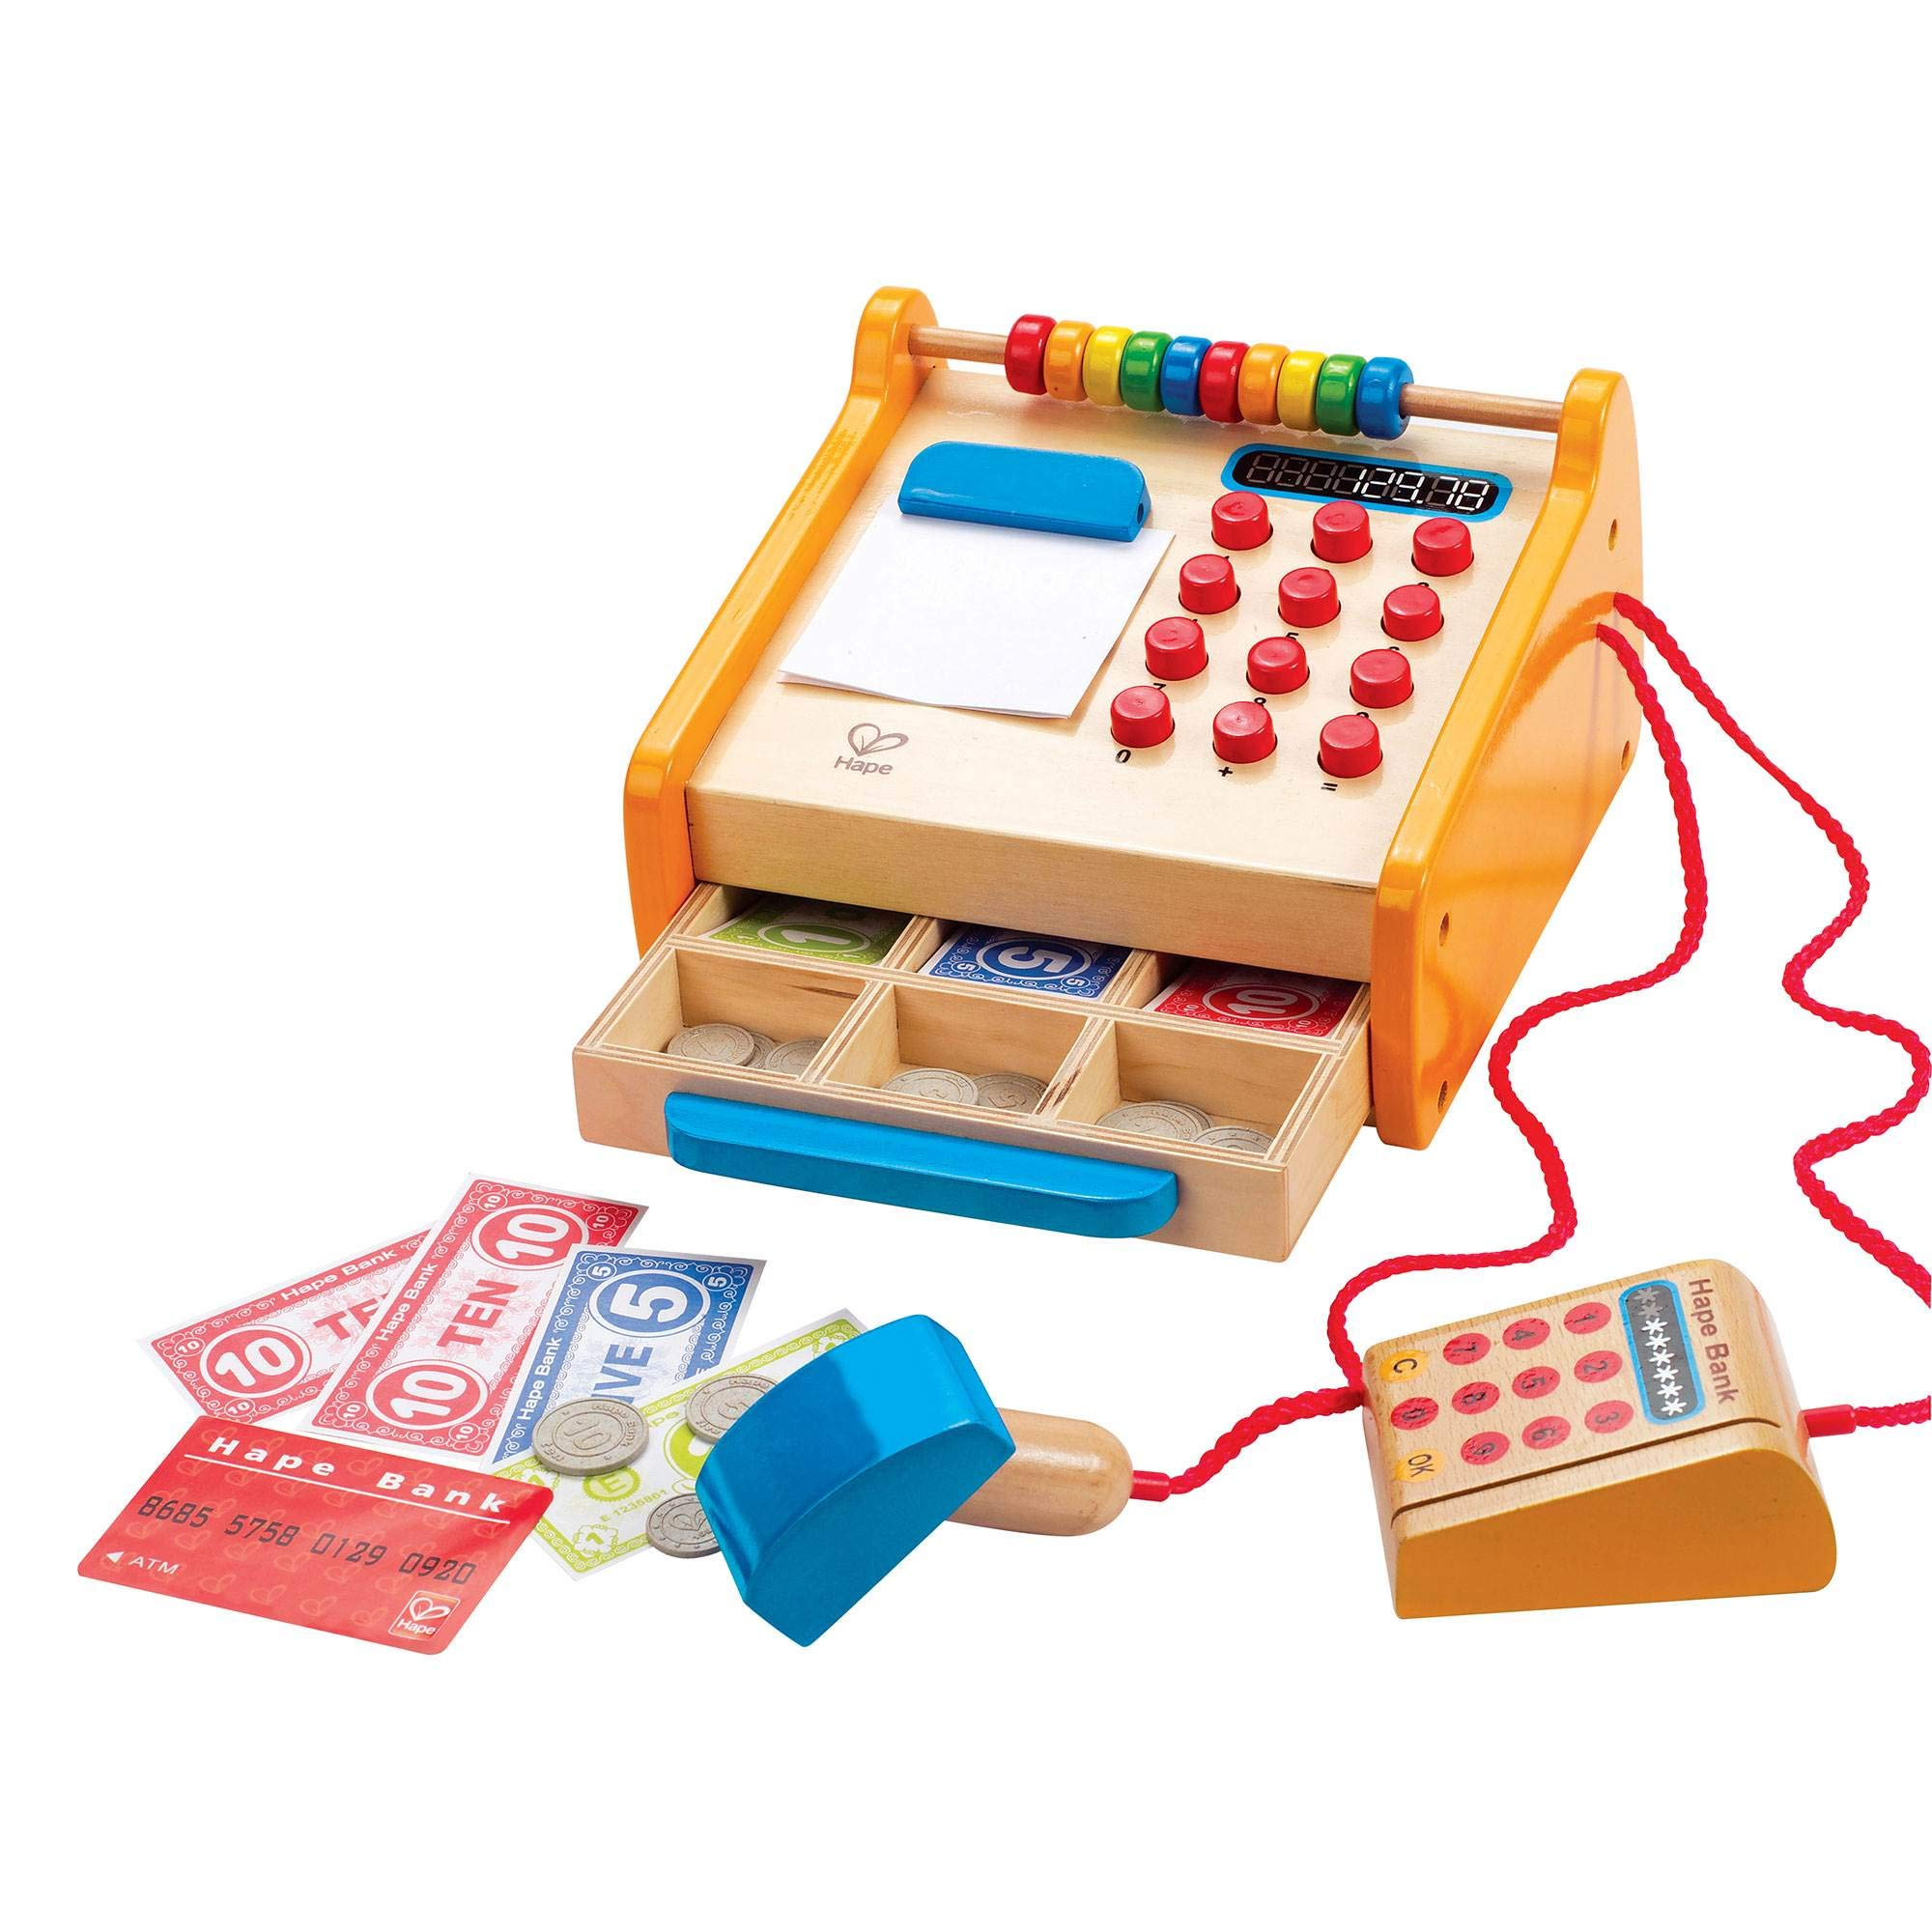 Hape Toys Kids Wooden Cash Register Pretend Playset Wooden Shopping Cart by Hape (Image #2)